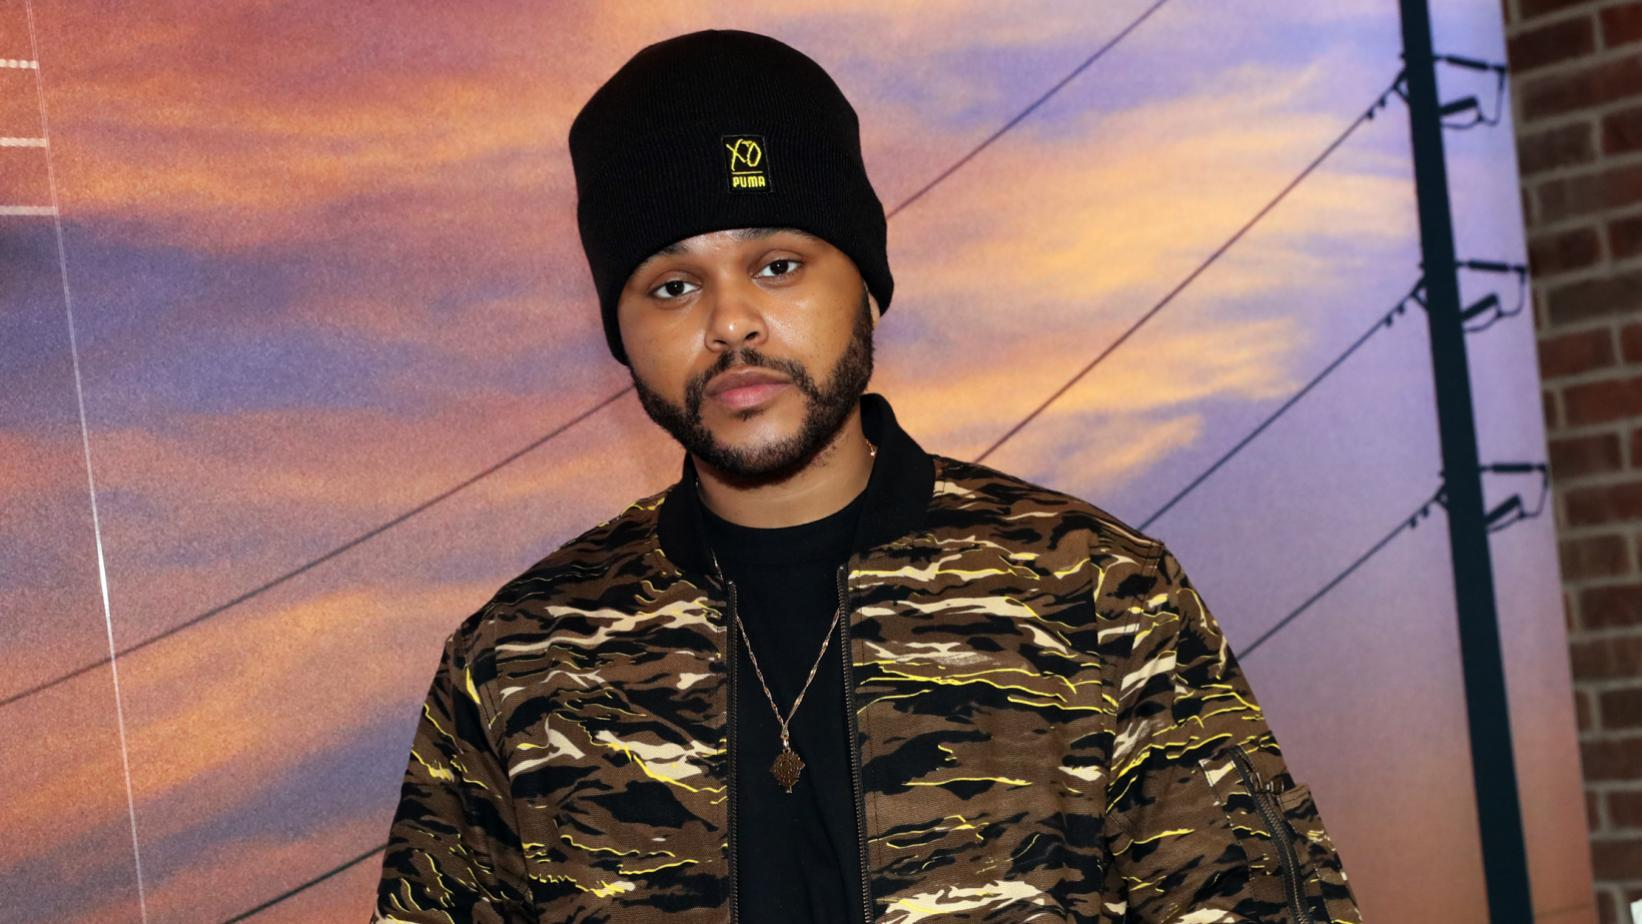 The Weeknd photographed in 2017